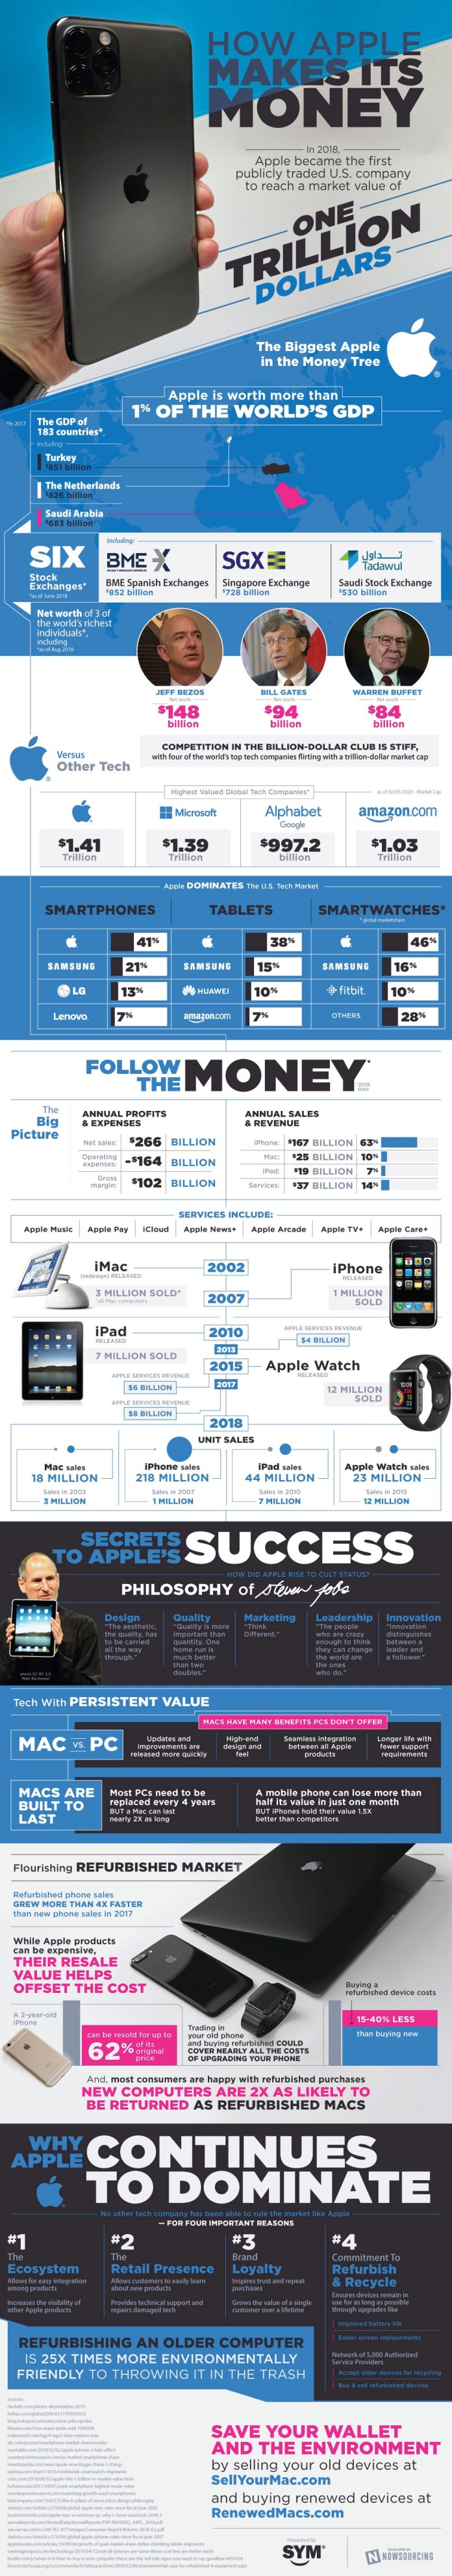 What's Behind Apple's Trillion-Dollar Success? 1